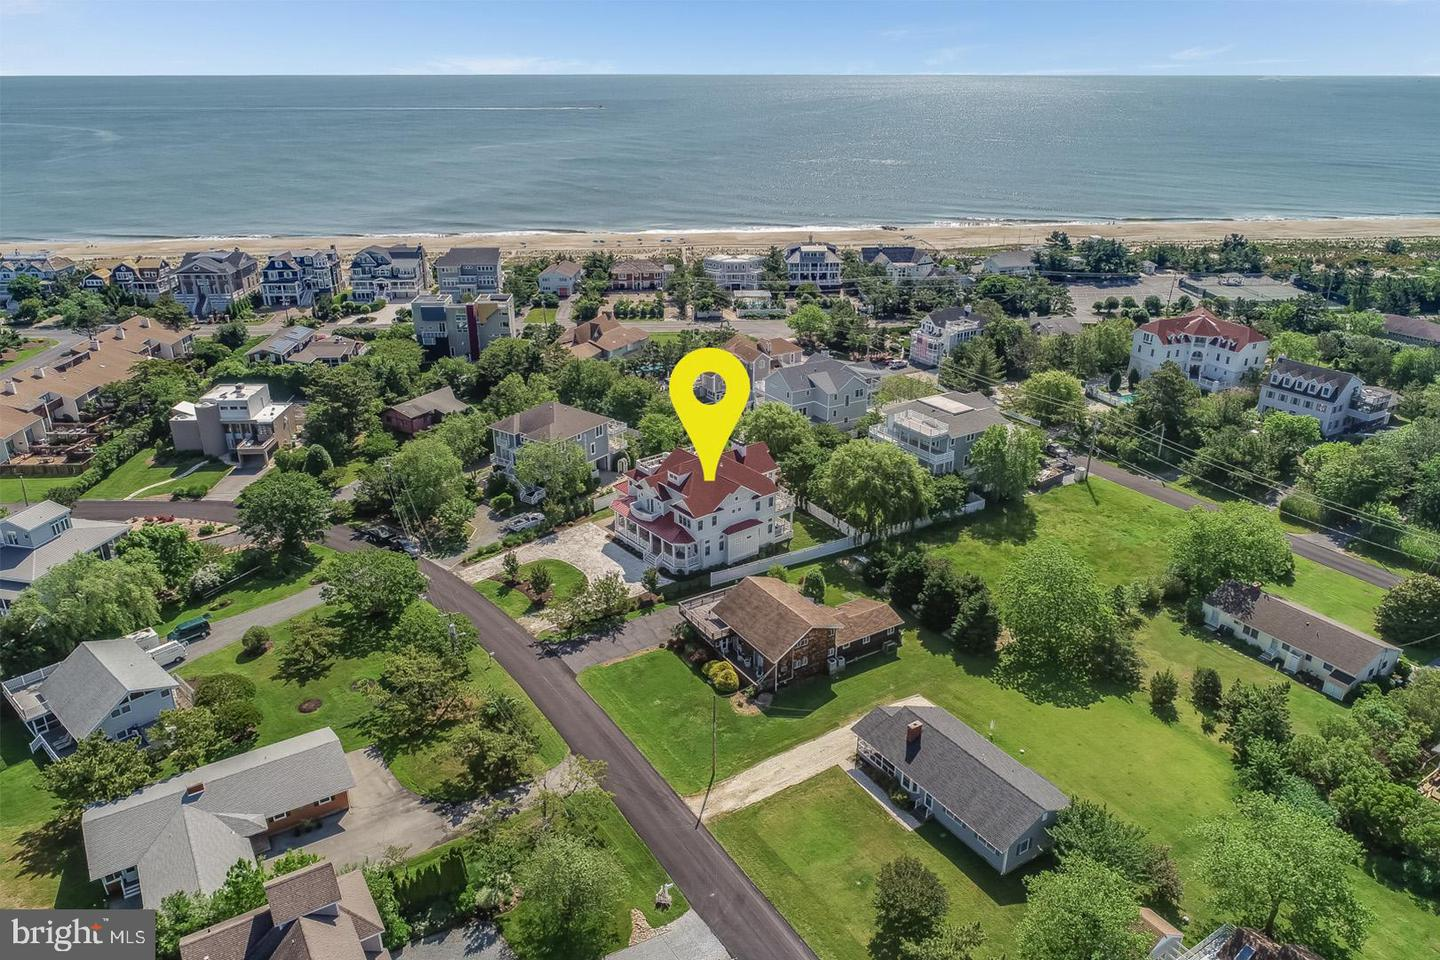 DESU141238-301766449515-2019-09-11-16-02-39 Sold Listings - Rehoboth Beach Real Estate - Bryce Lingo and Shaun Tull REALTORS, Rehoboth Beach, Delaware